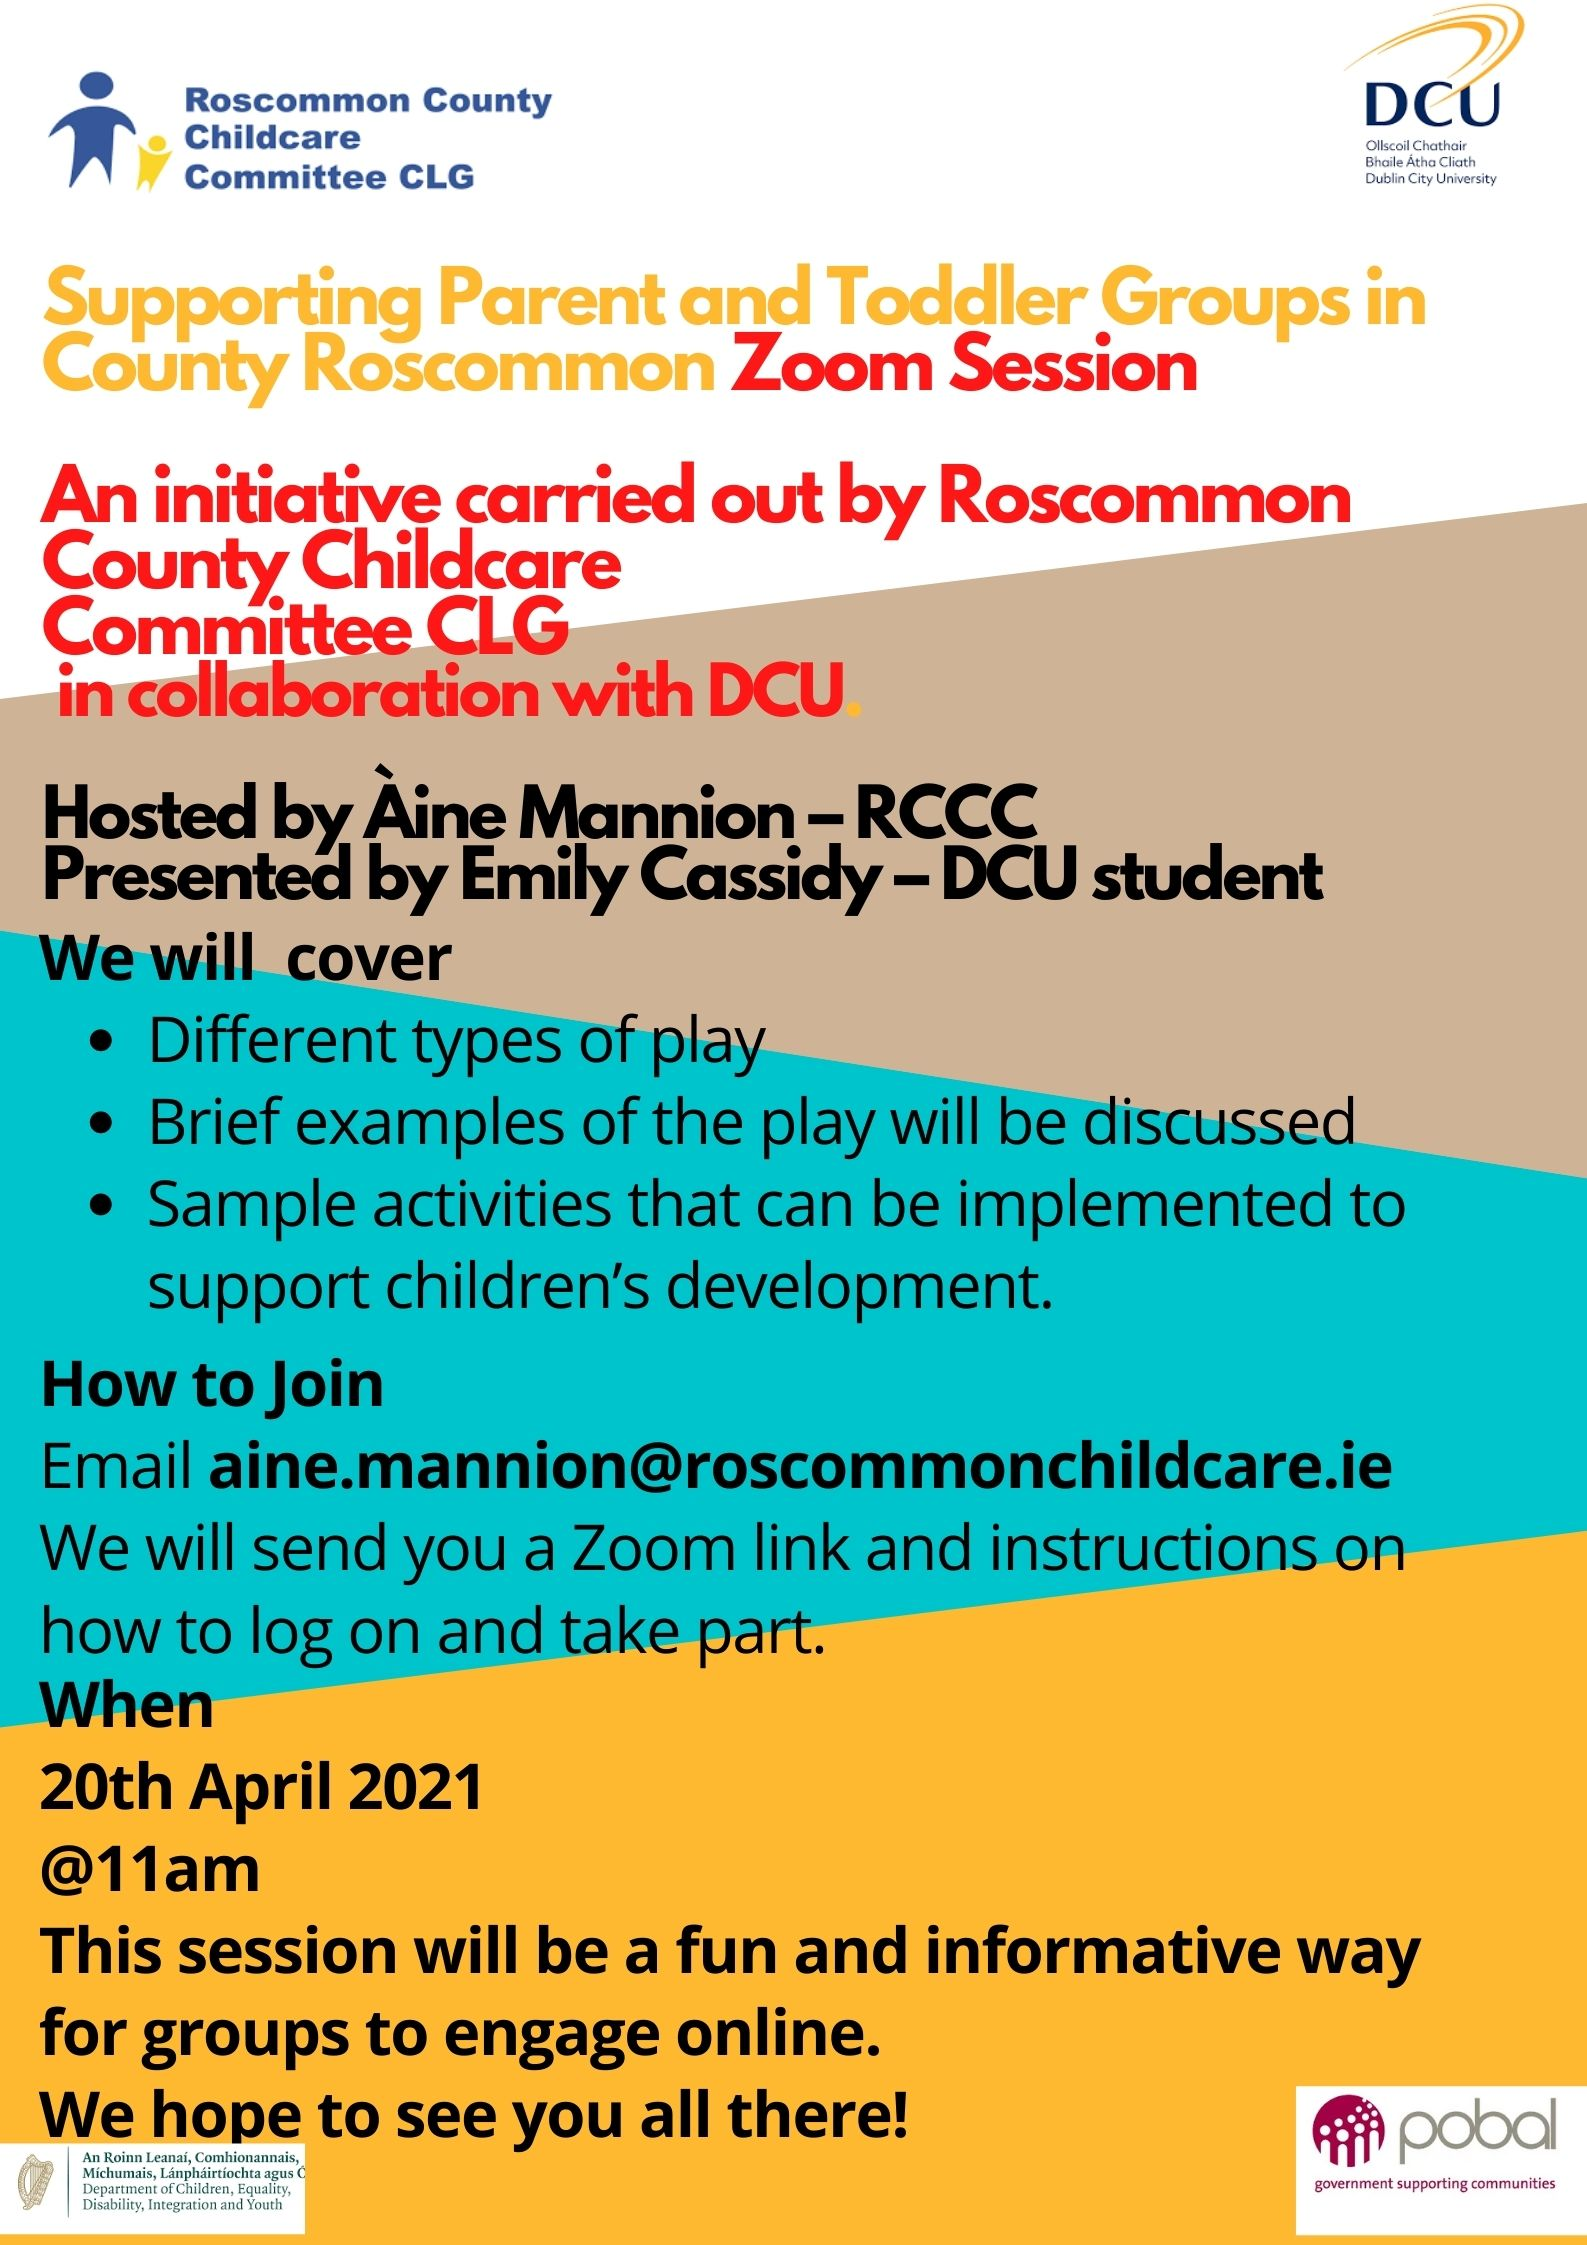 Supporting Parent and Toddler Groups in County Roscommon Zoom Session An initiative carried out by Roscommon County Childcare Committee CLG in collaboration with DCU.